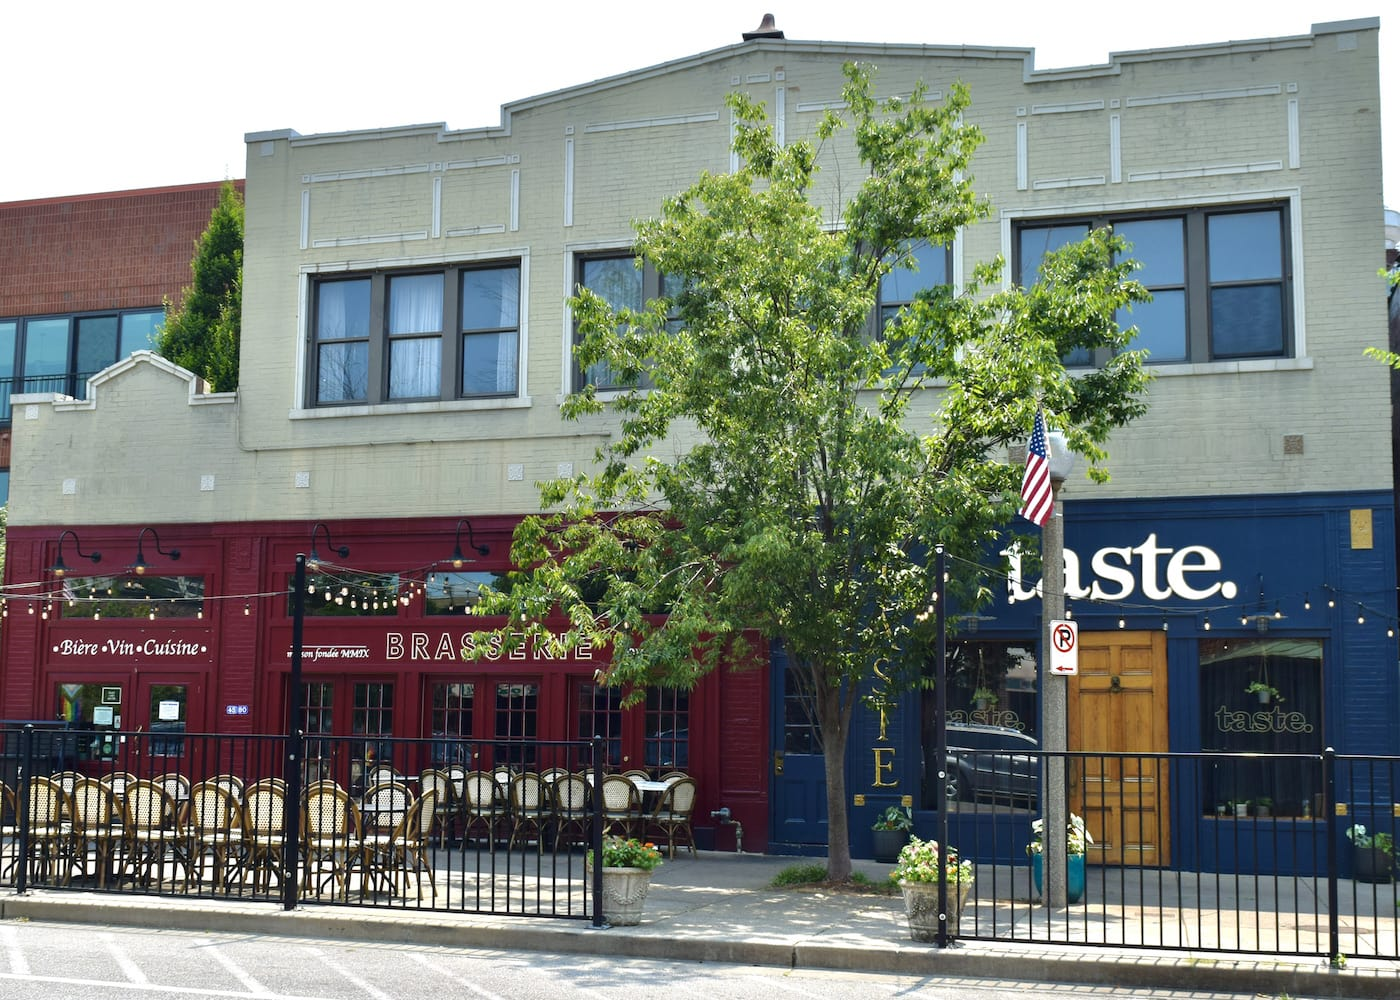 Taste and Brasserie in the Central West End